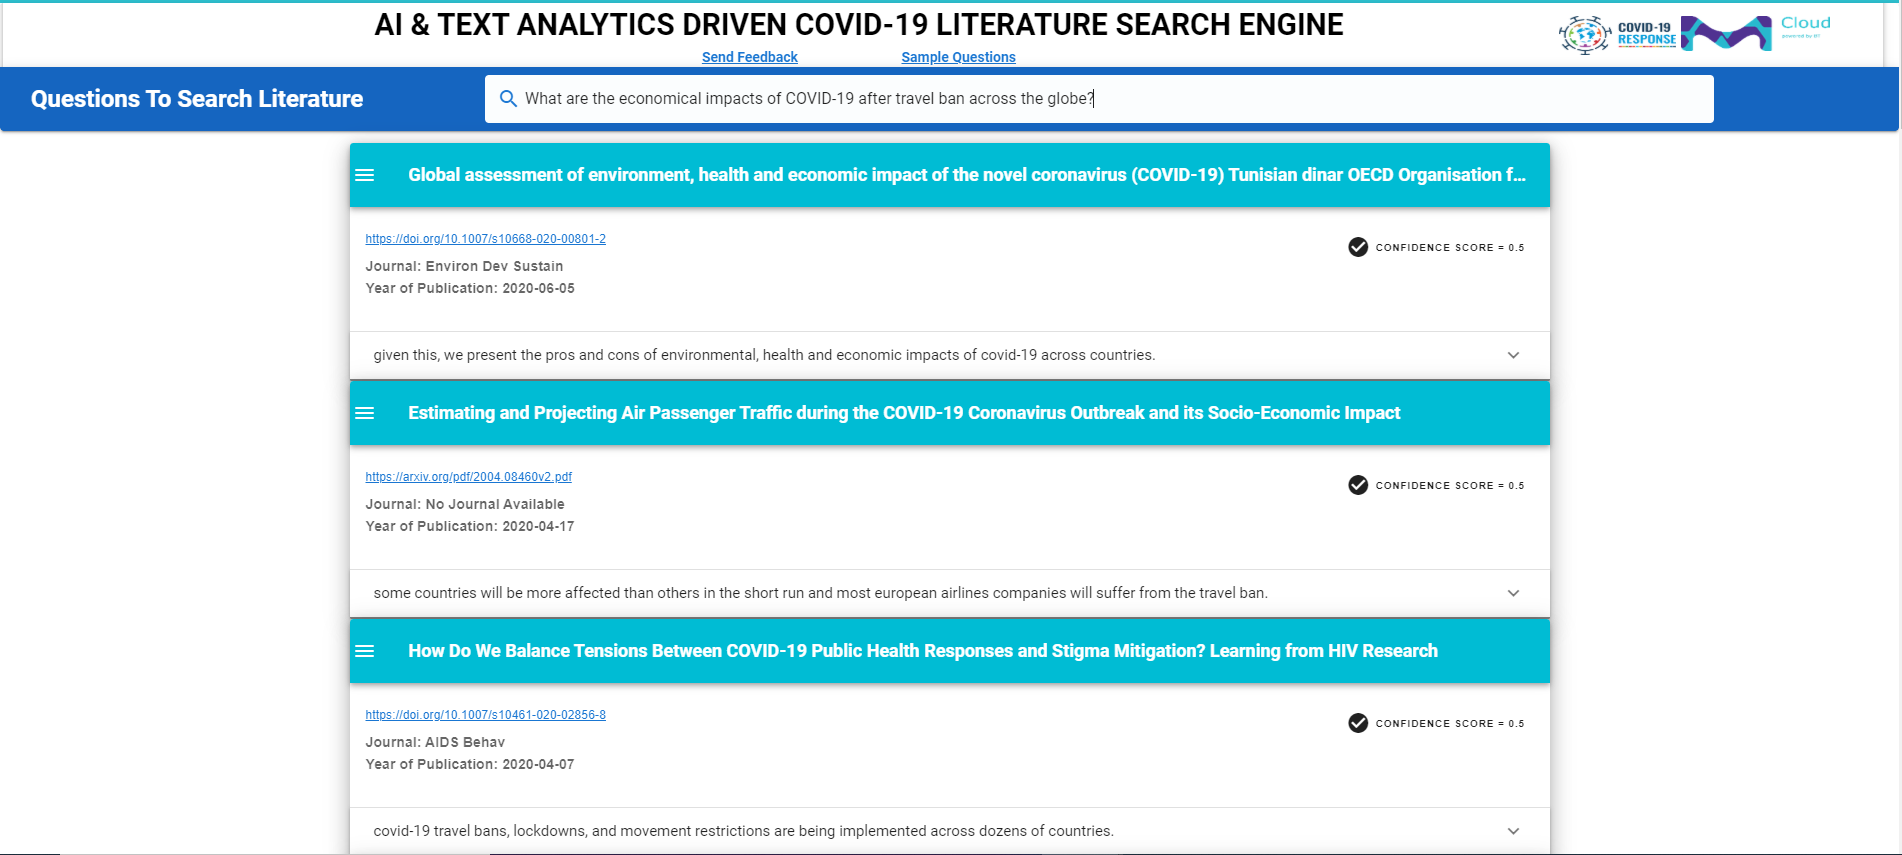 How This NLP-Driven Literature Search Engine Can Help In Extracting Relevant COVID Information For Medical Innovation